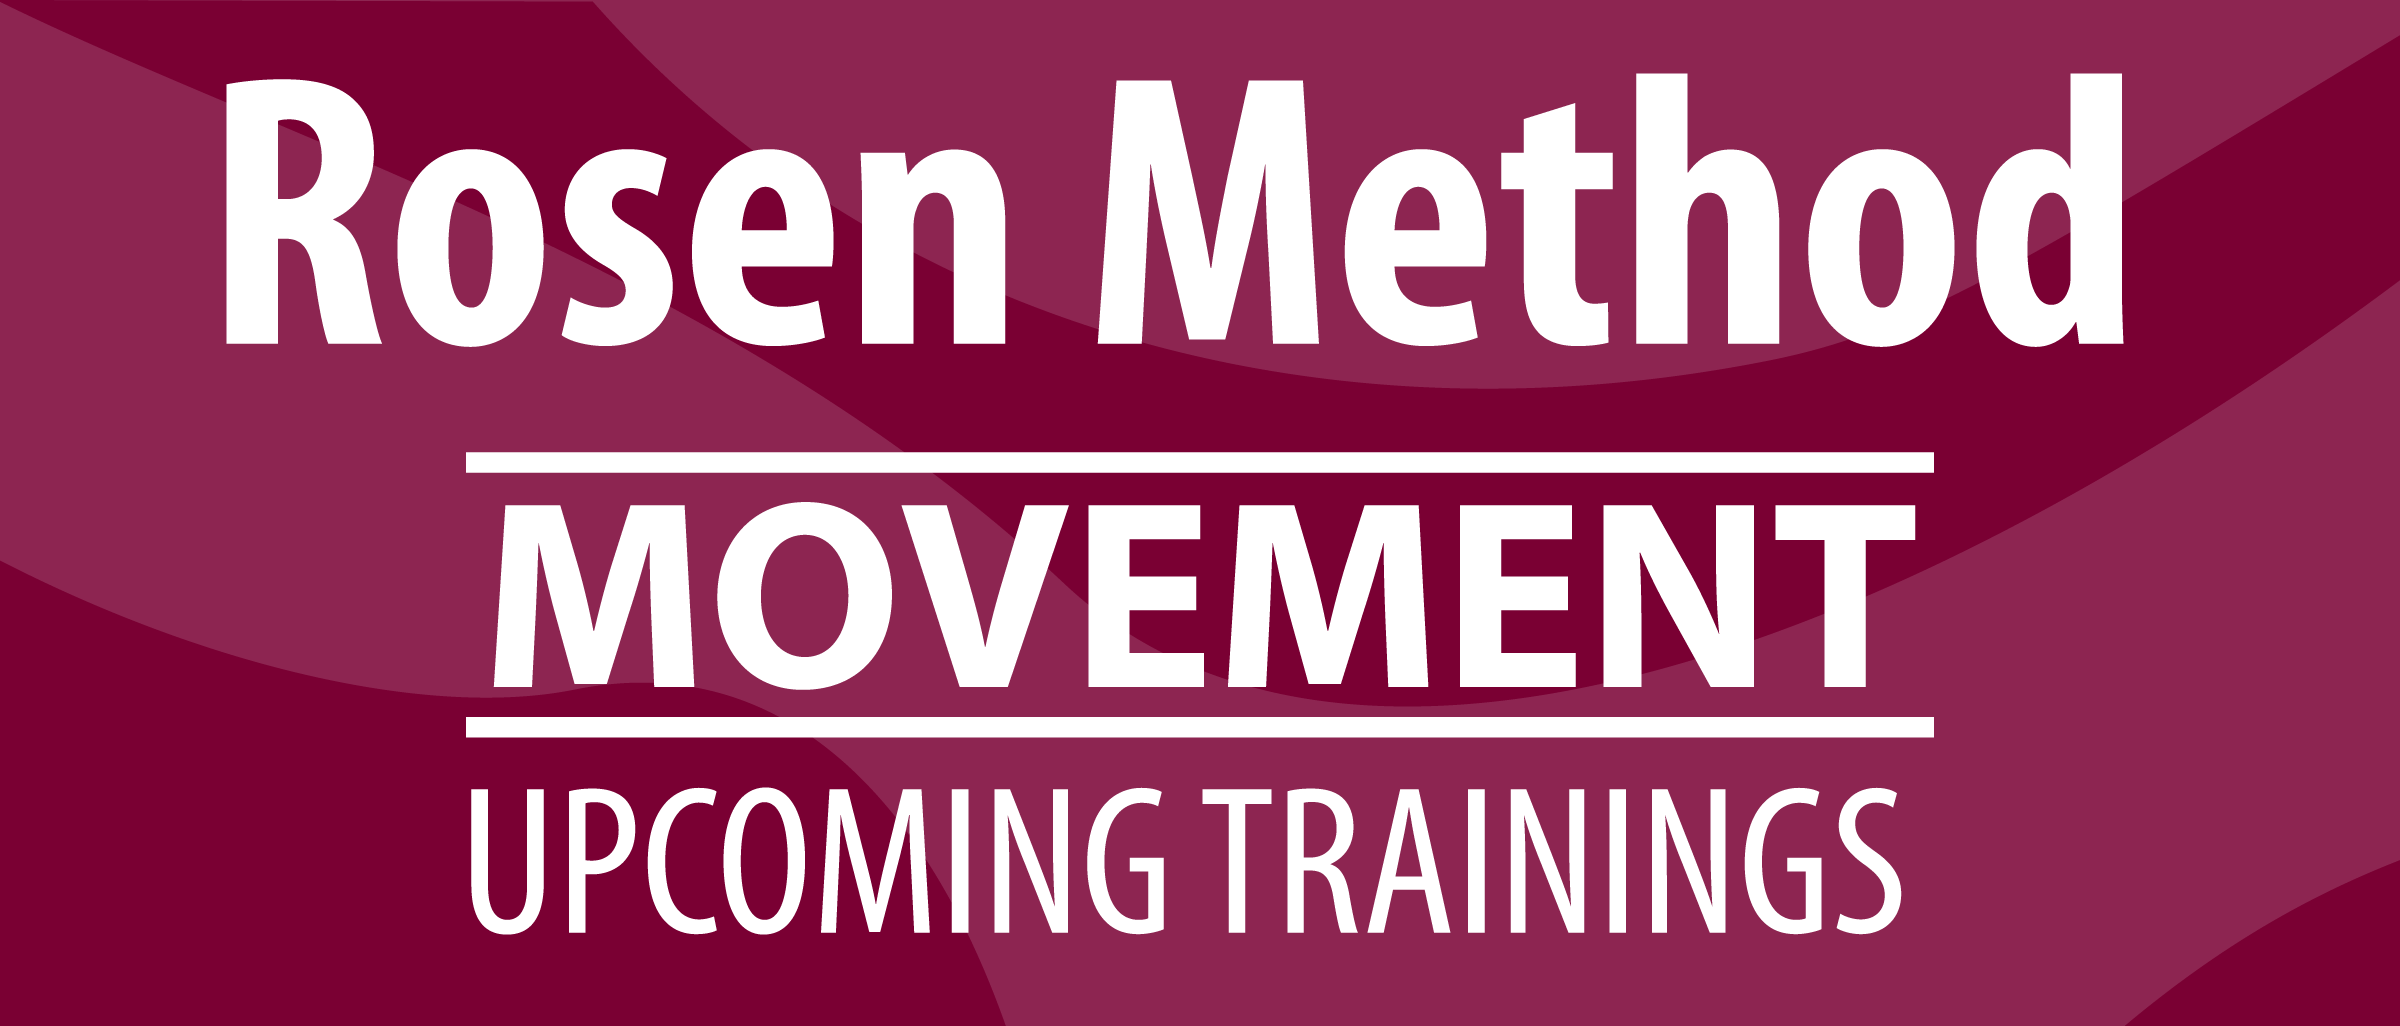 Rosen Method Movement Upcoming Training Sessions